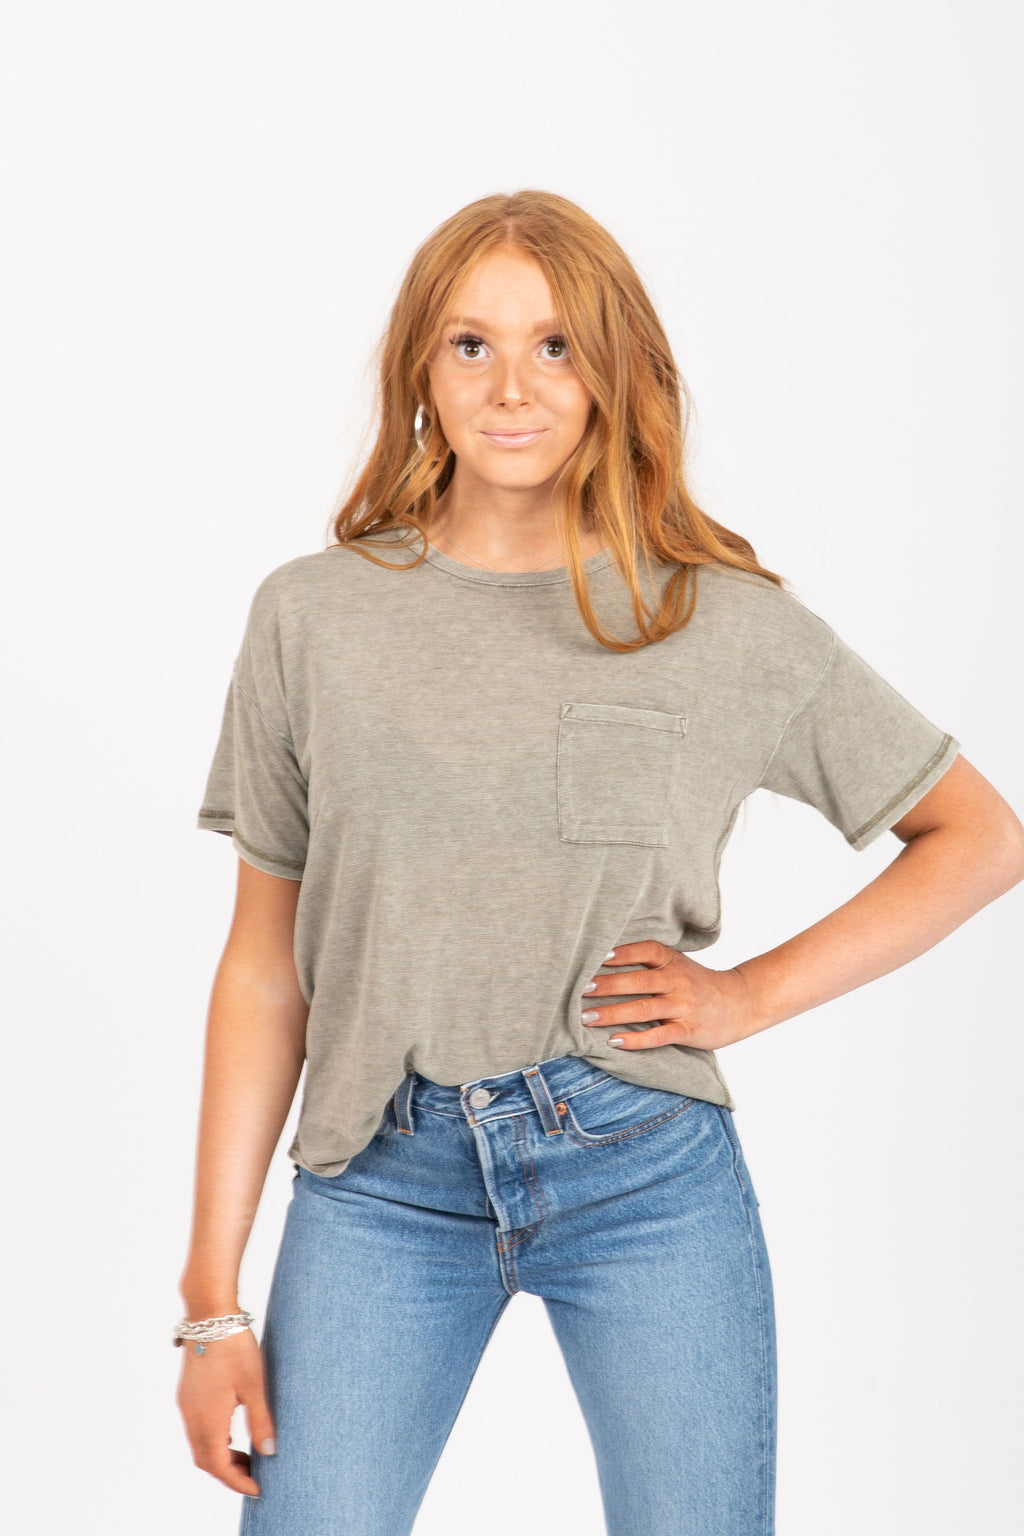 The Denison Pocket Tee in Olive Green